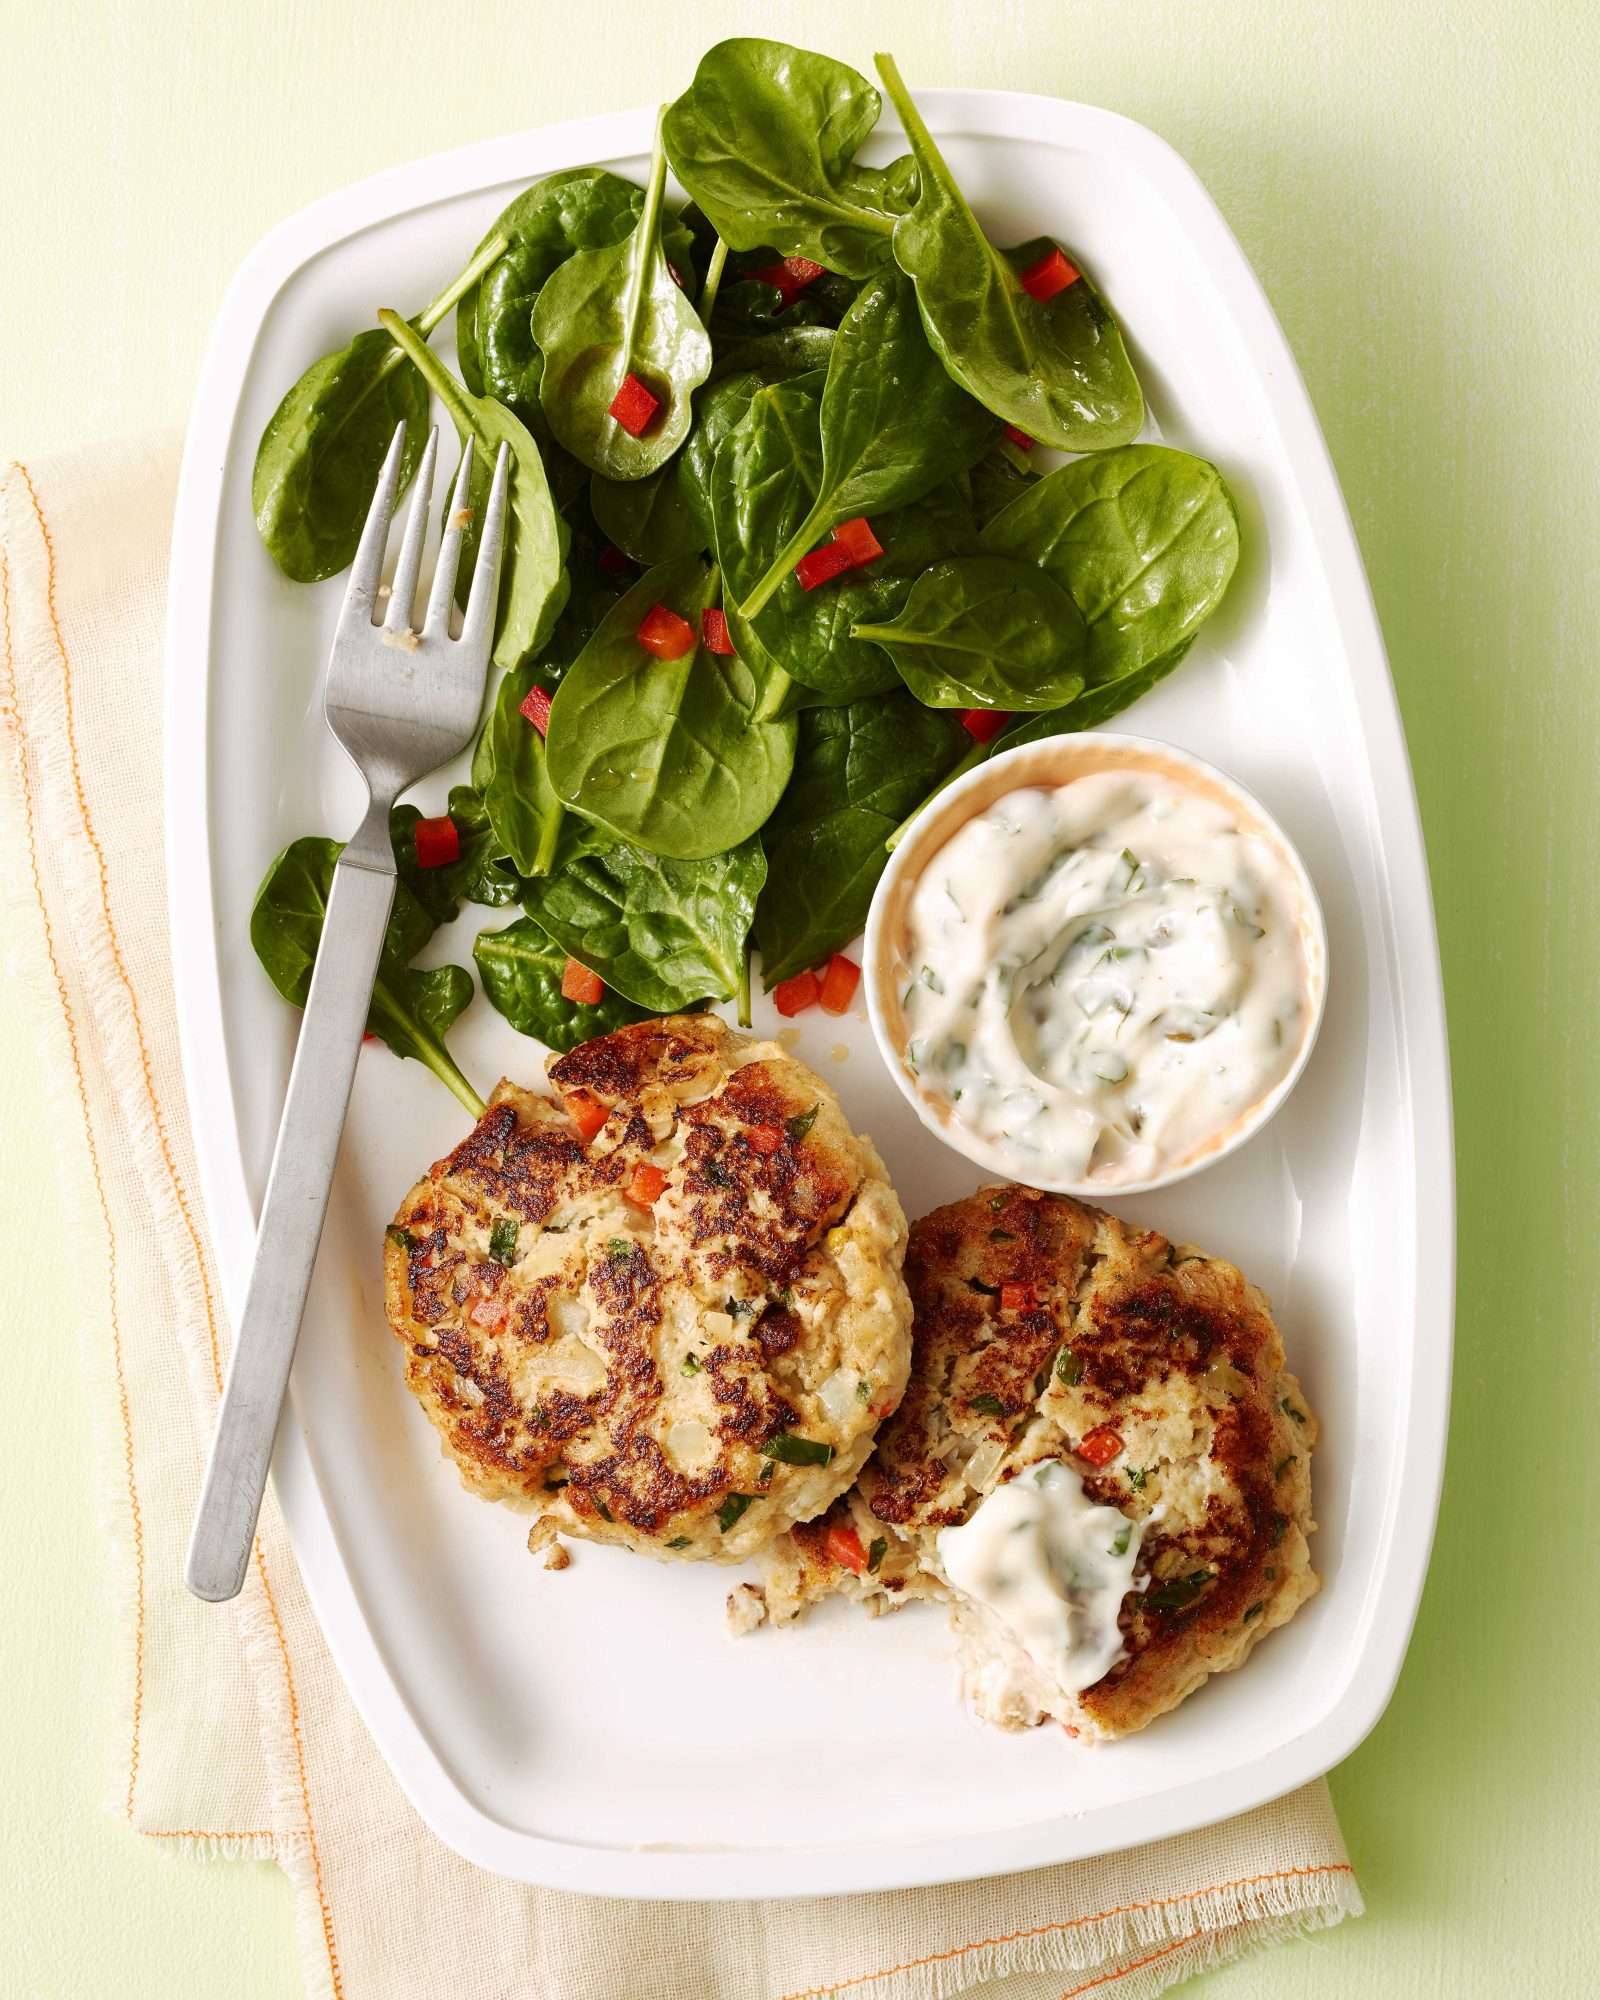 Fish Cakes with Spinach Salad